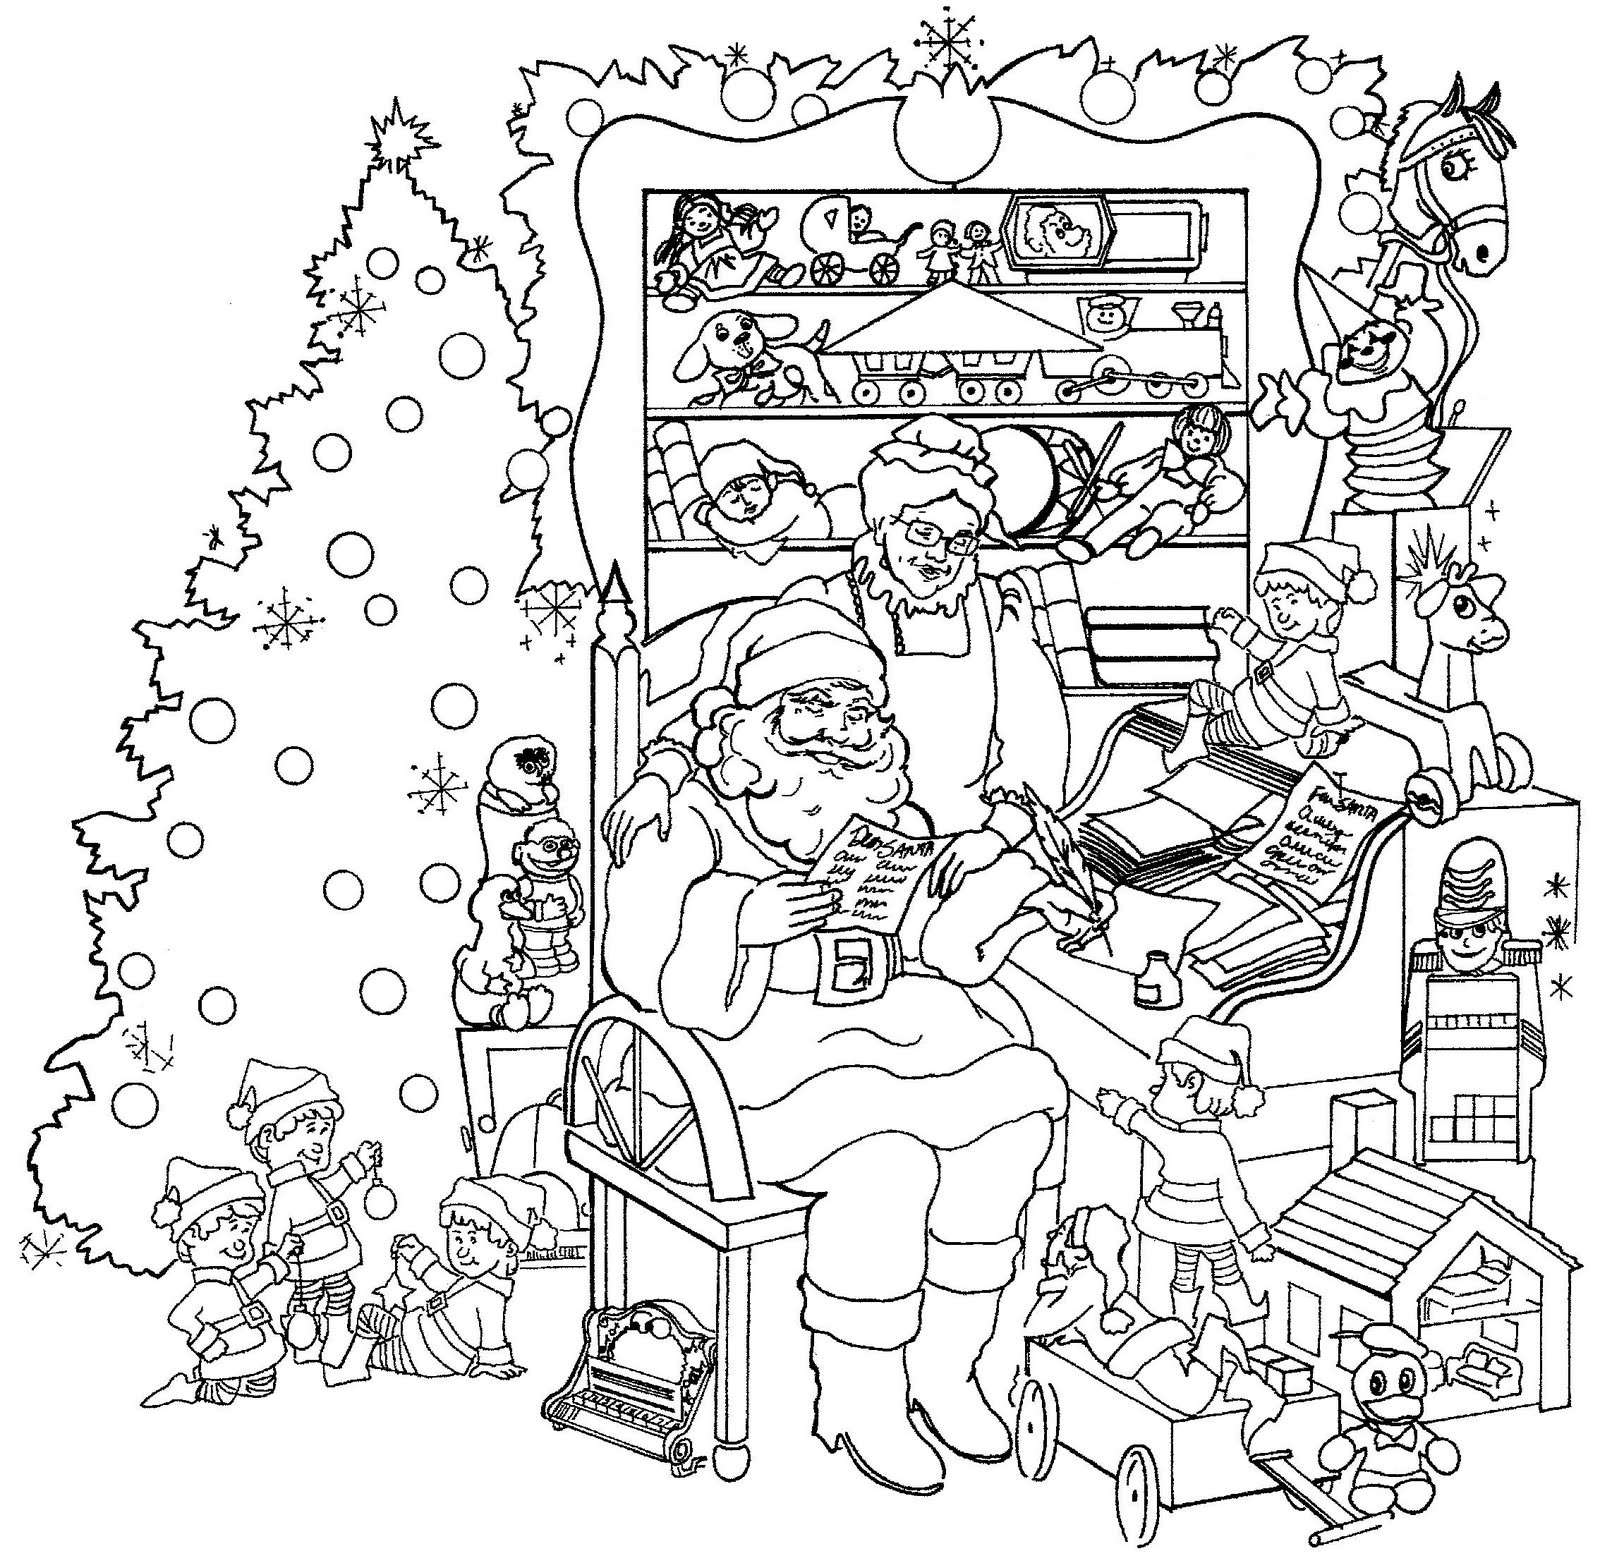 It is an image of Rare Printable Christmas Coloring Pages for Adults